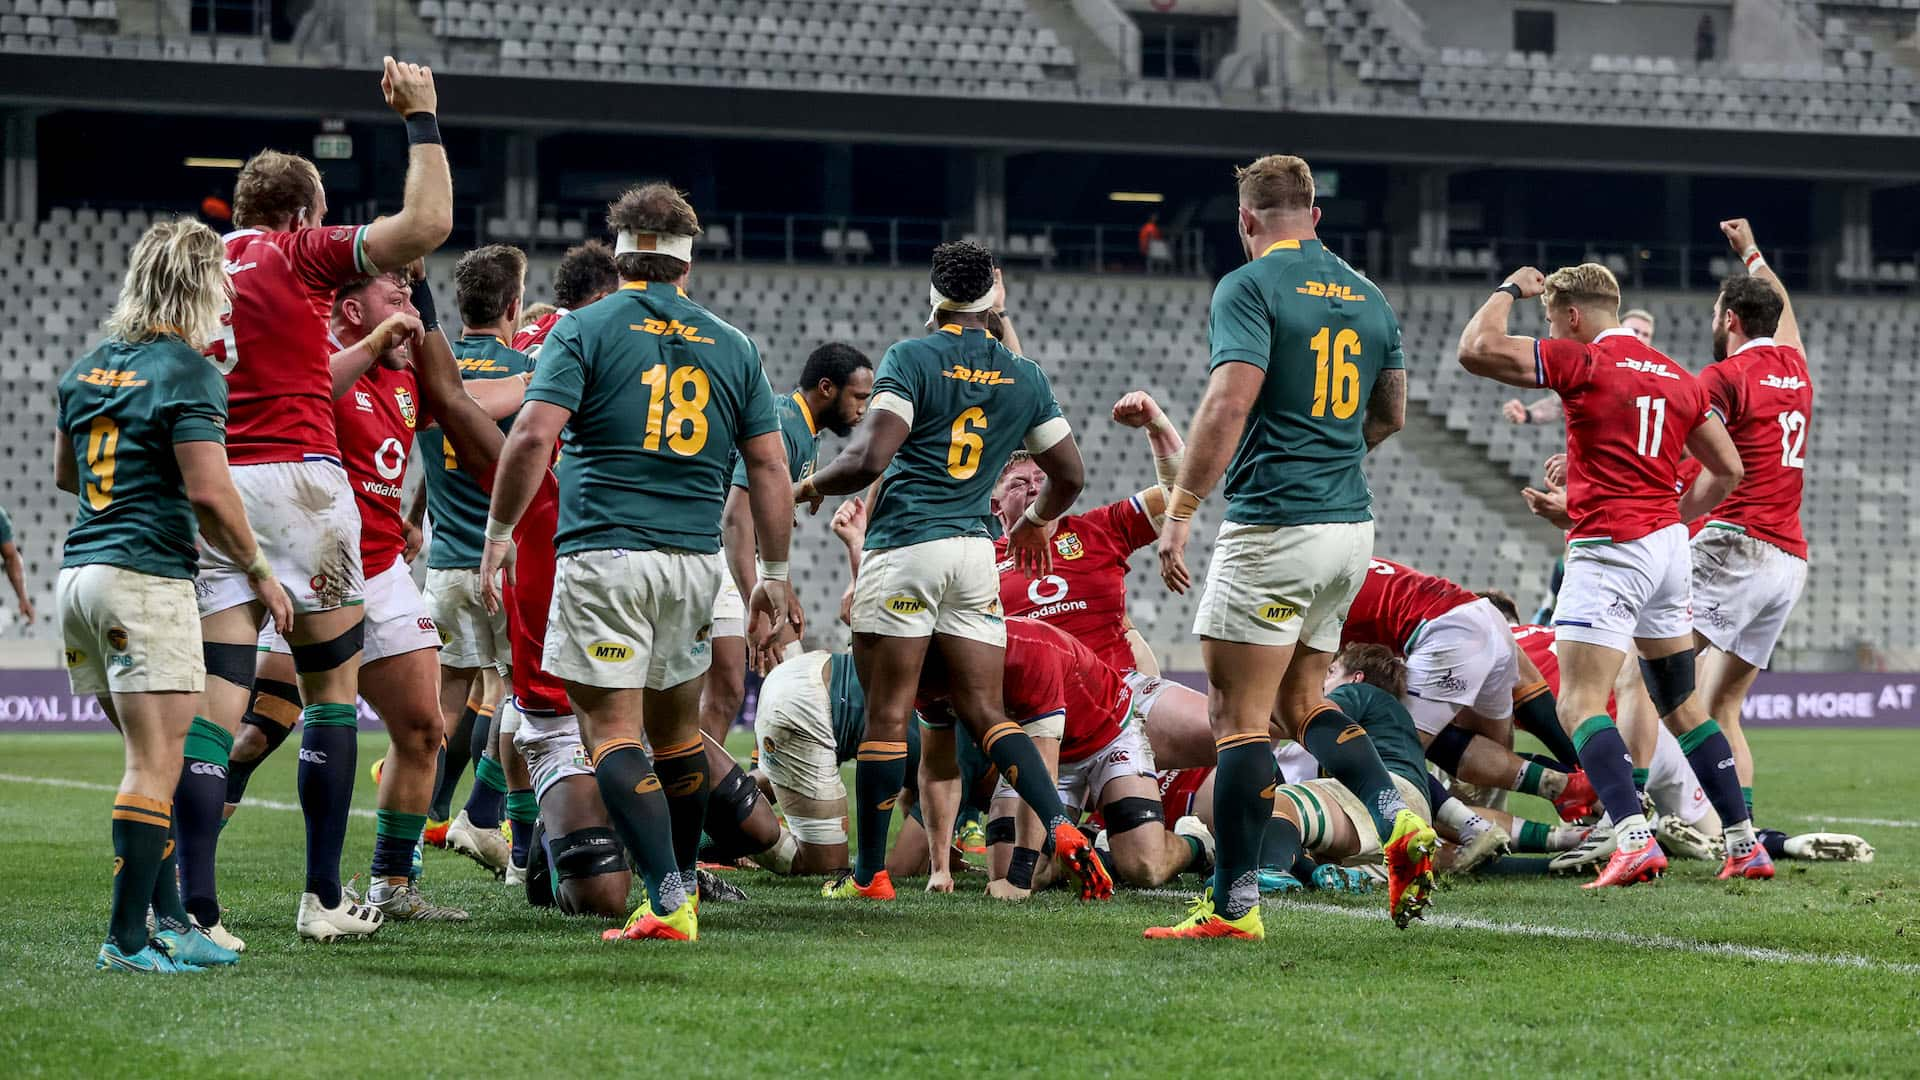 The British Irish Lions celebrate after Luke Cowan-Dickie scores a try from the maul